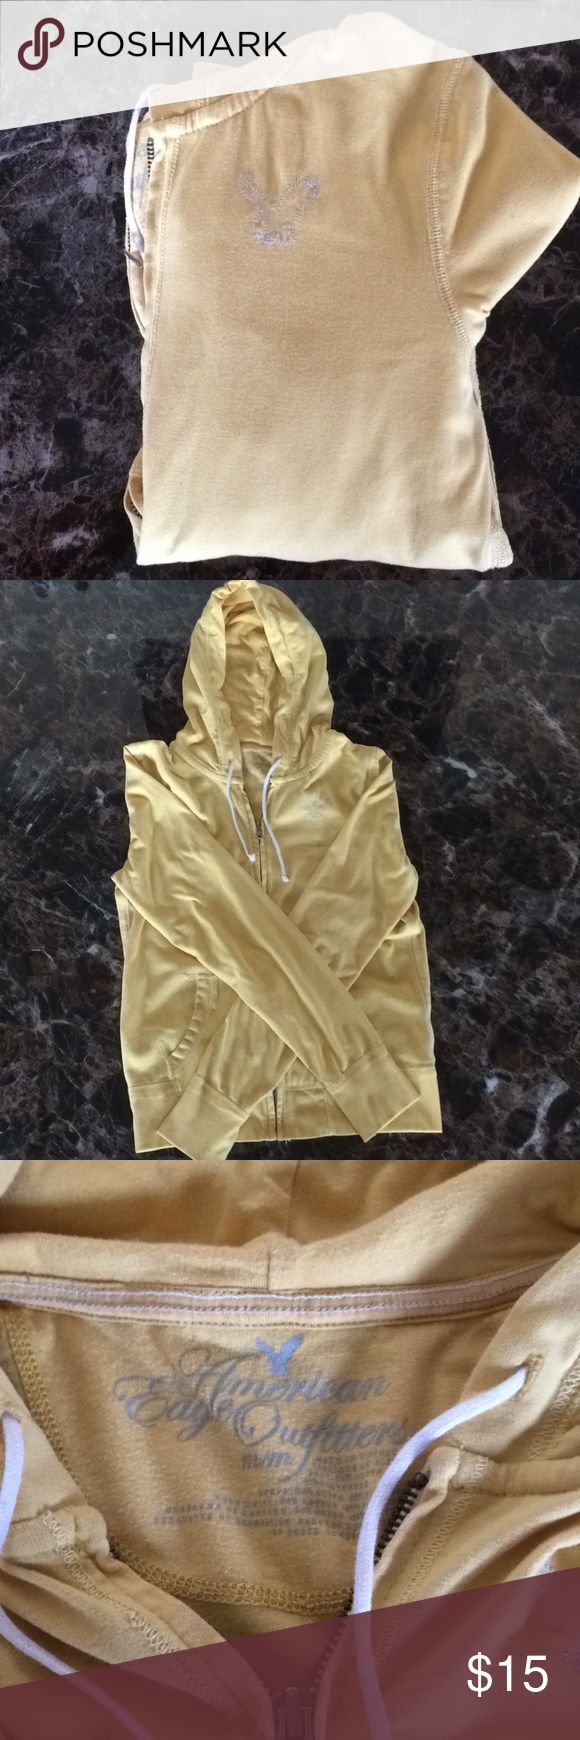 American Eagle Outfitters zip up hoodie 🦅 American Eagle Outfitters zip up hoodie. Great condition, rarely wore. Sad they don't fit me anymore. Very comfortable zip up hoodie.  Color is a beautiful yellow. Not dark and not light, 2nd picture captured the color better. American Eagle Outfitters Tops Sweatshirts & Hoodies